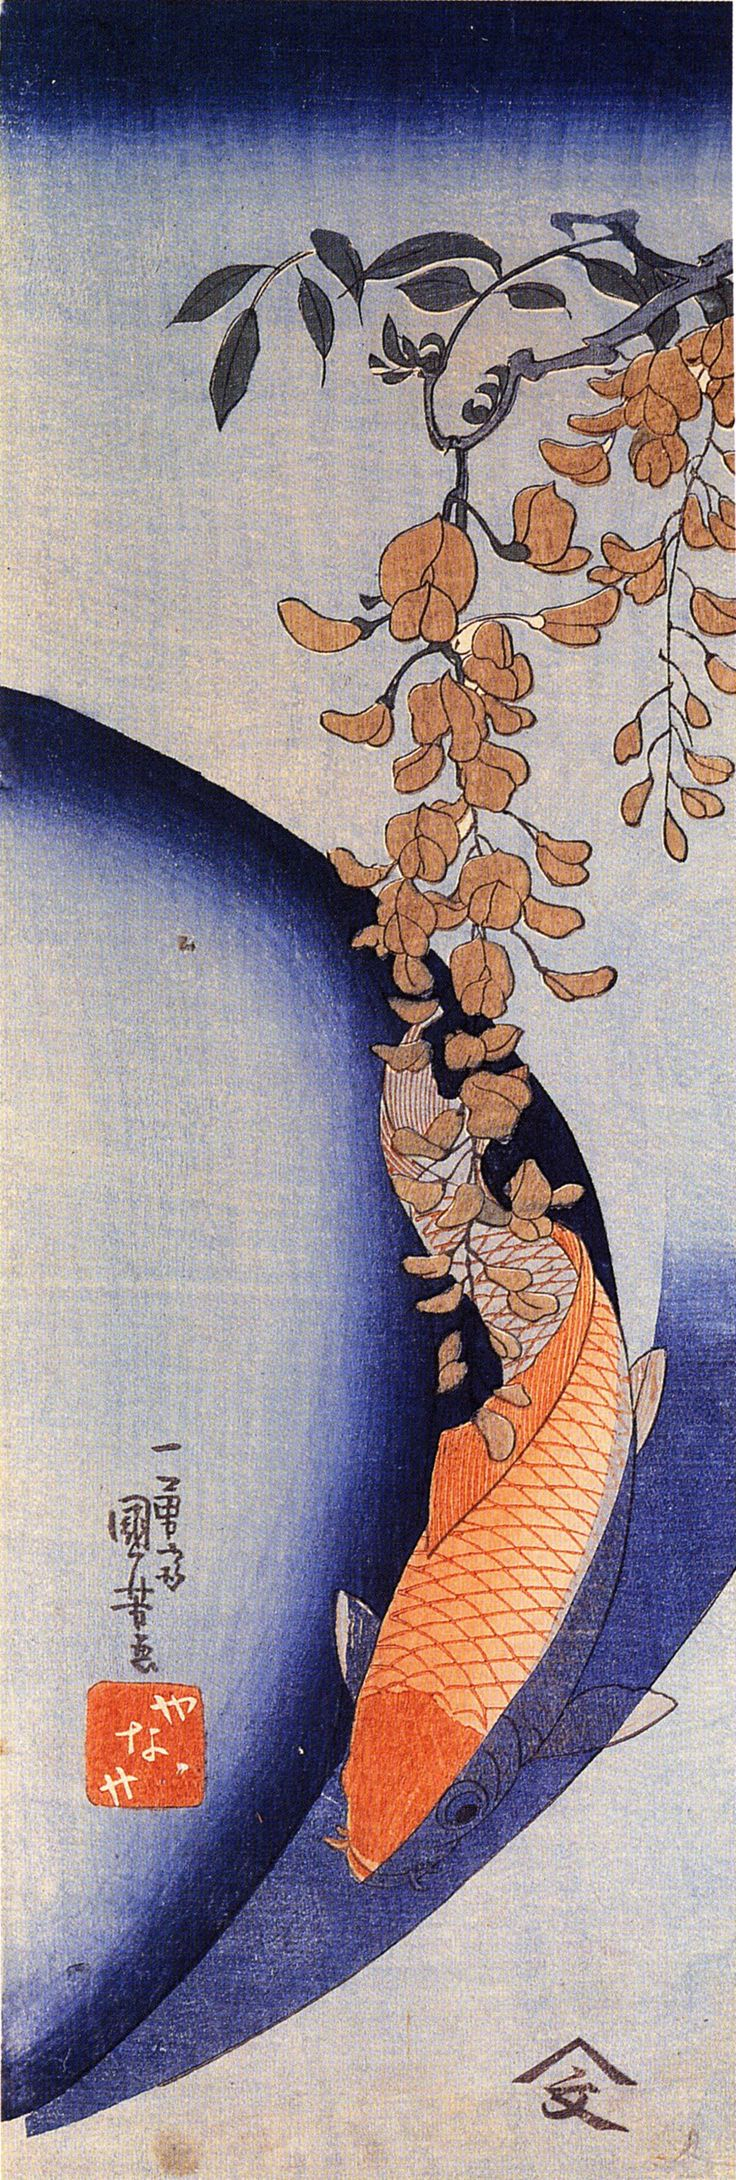 utagawa-kuniyoshi/red-carp-under-wisteria, oooh, I love this wisteria and carp, blue and orange...